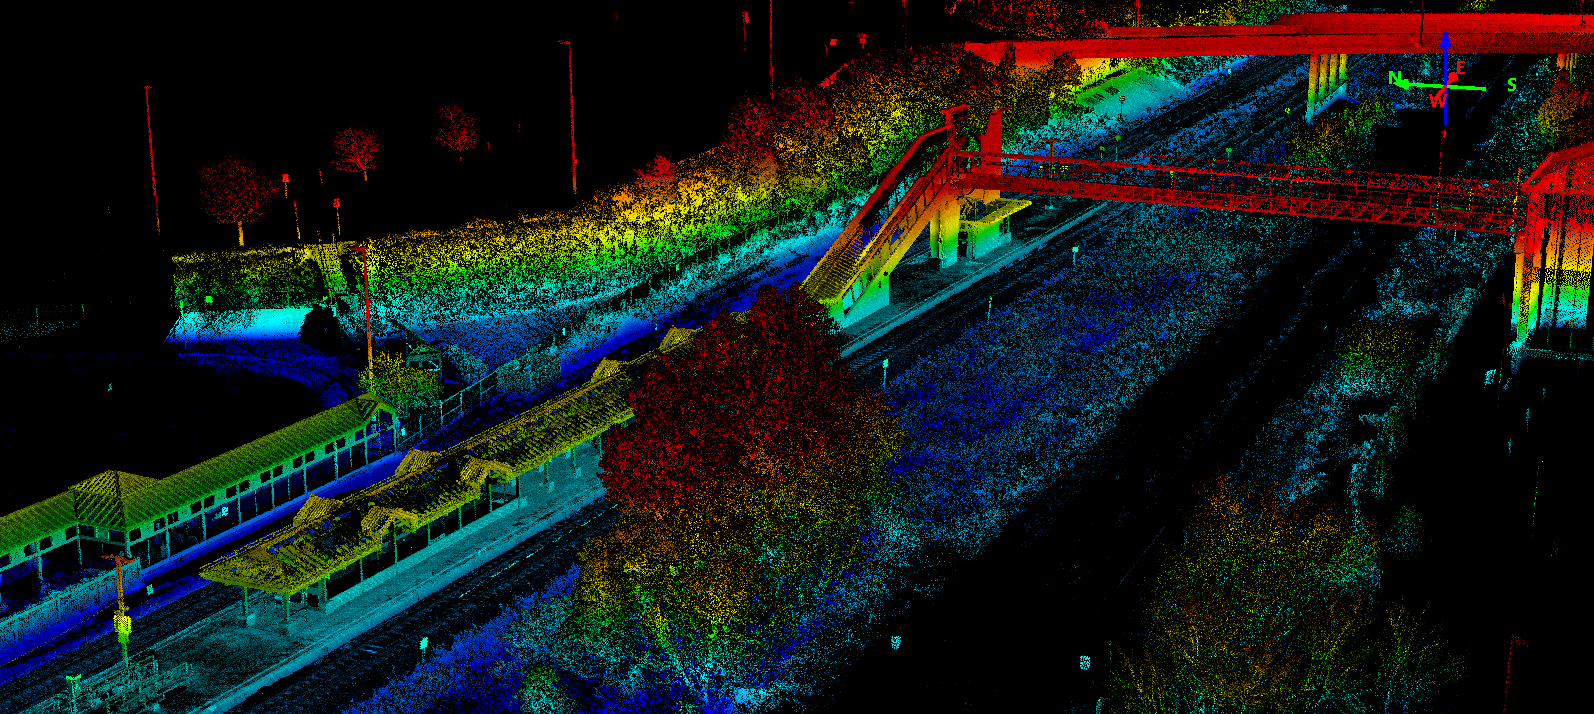 Whitby-Brock Station LiDAR Perspective